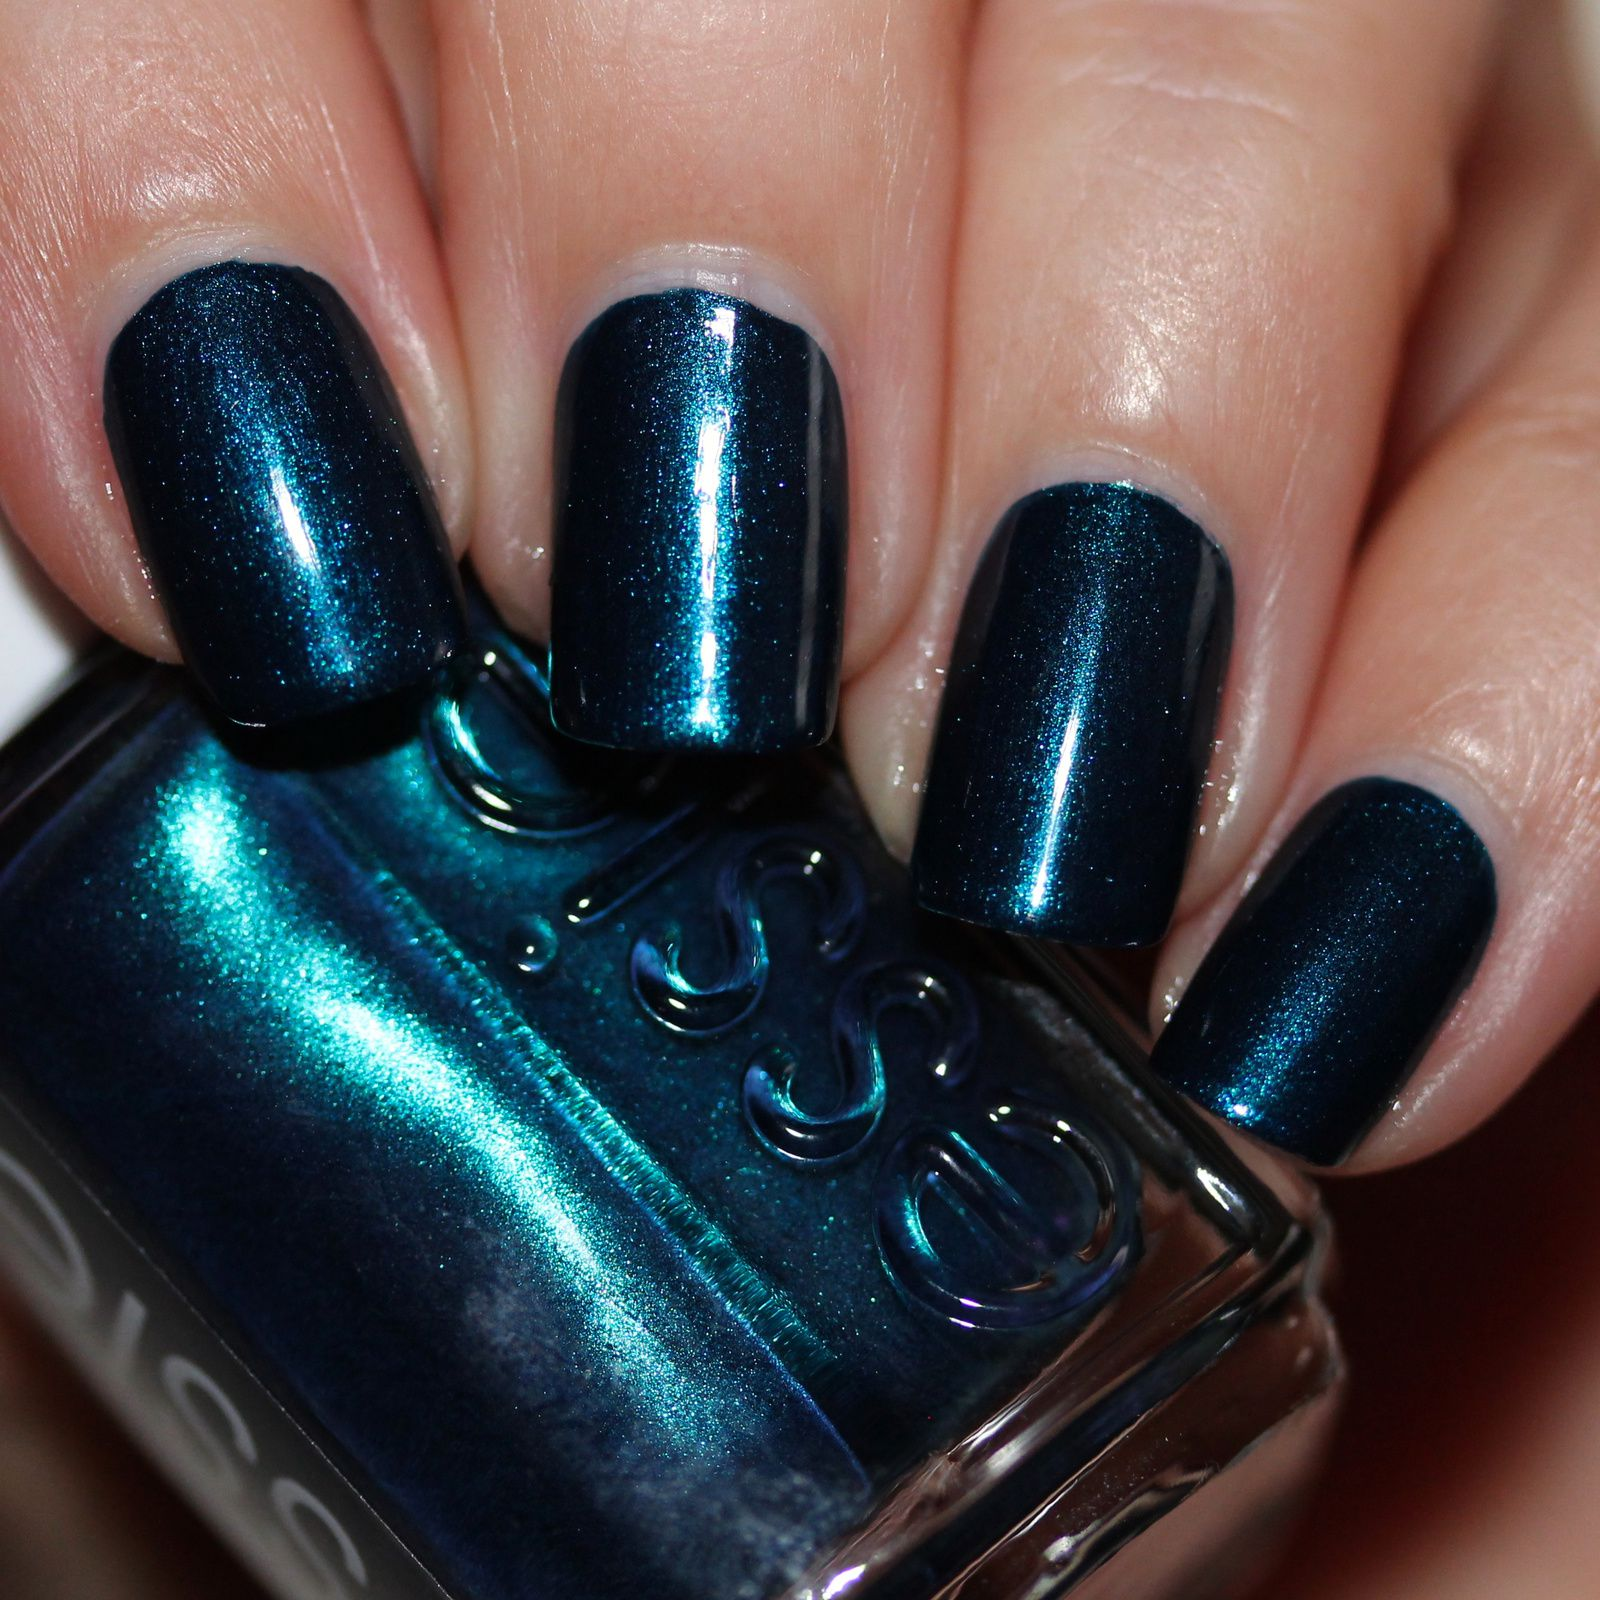 Duri Rejuvacote / Essie Bell-Bottom Blues / HK Girl Top Coat